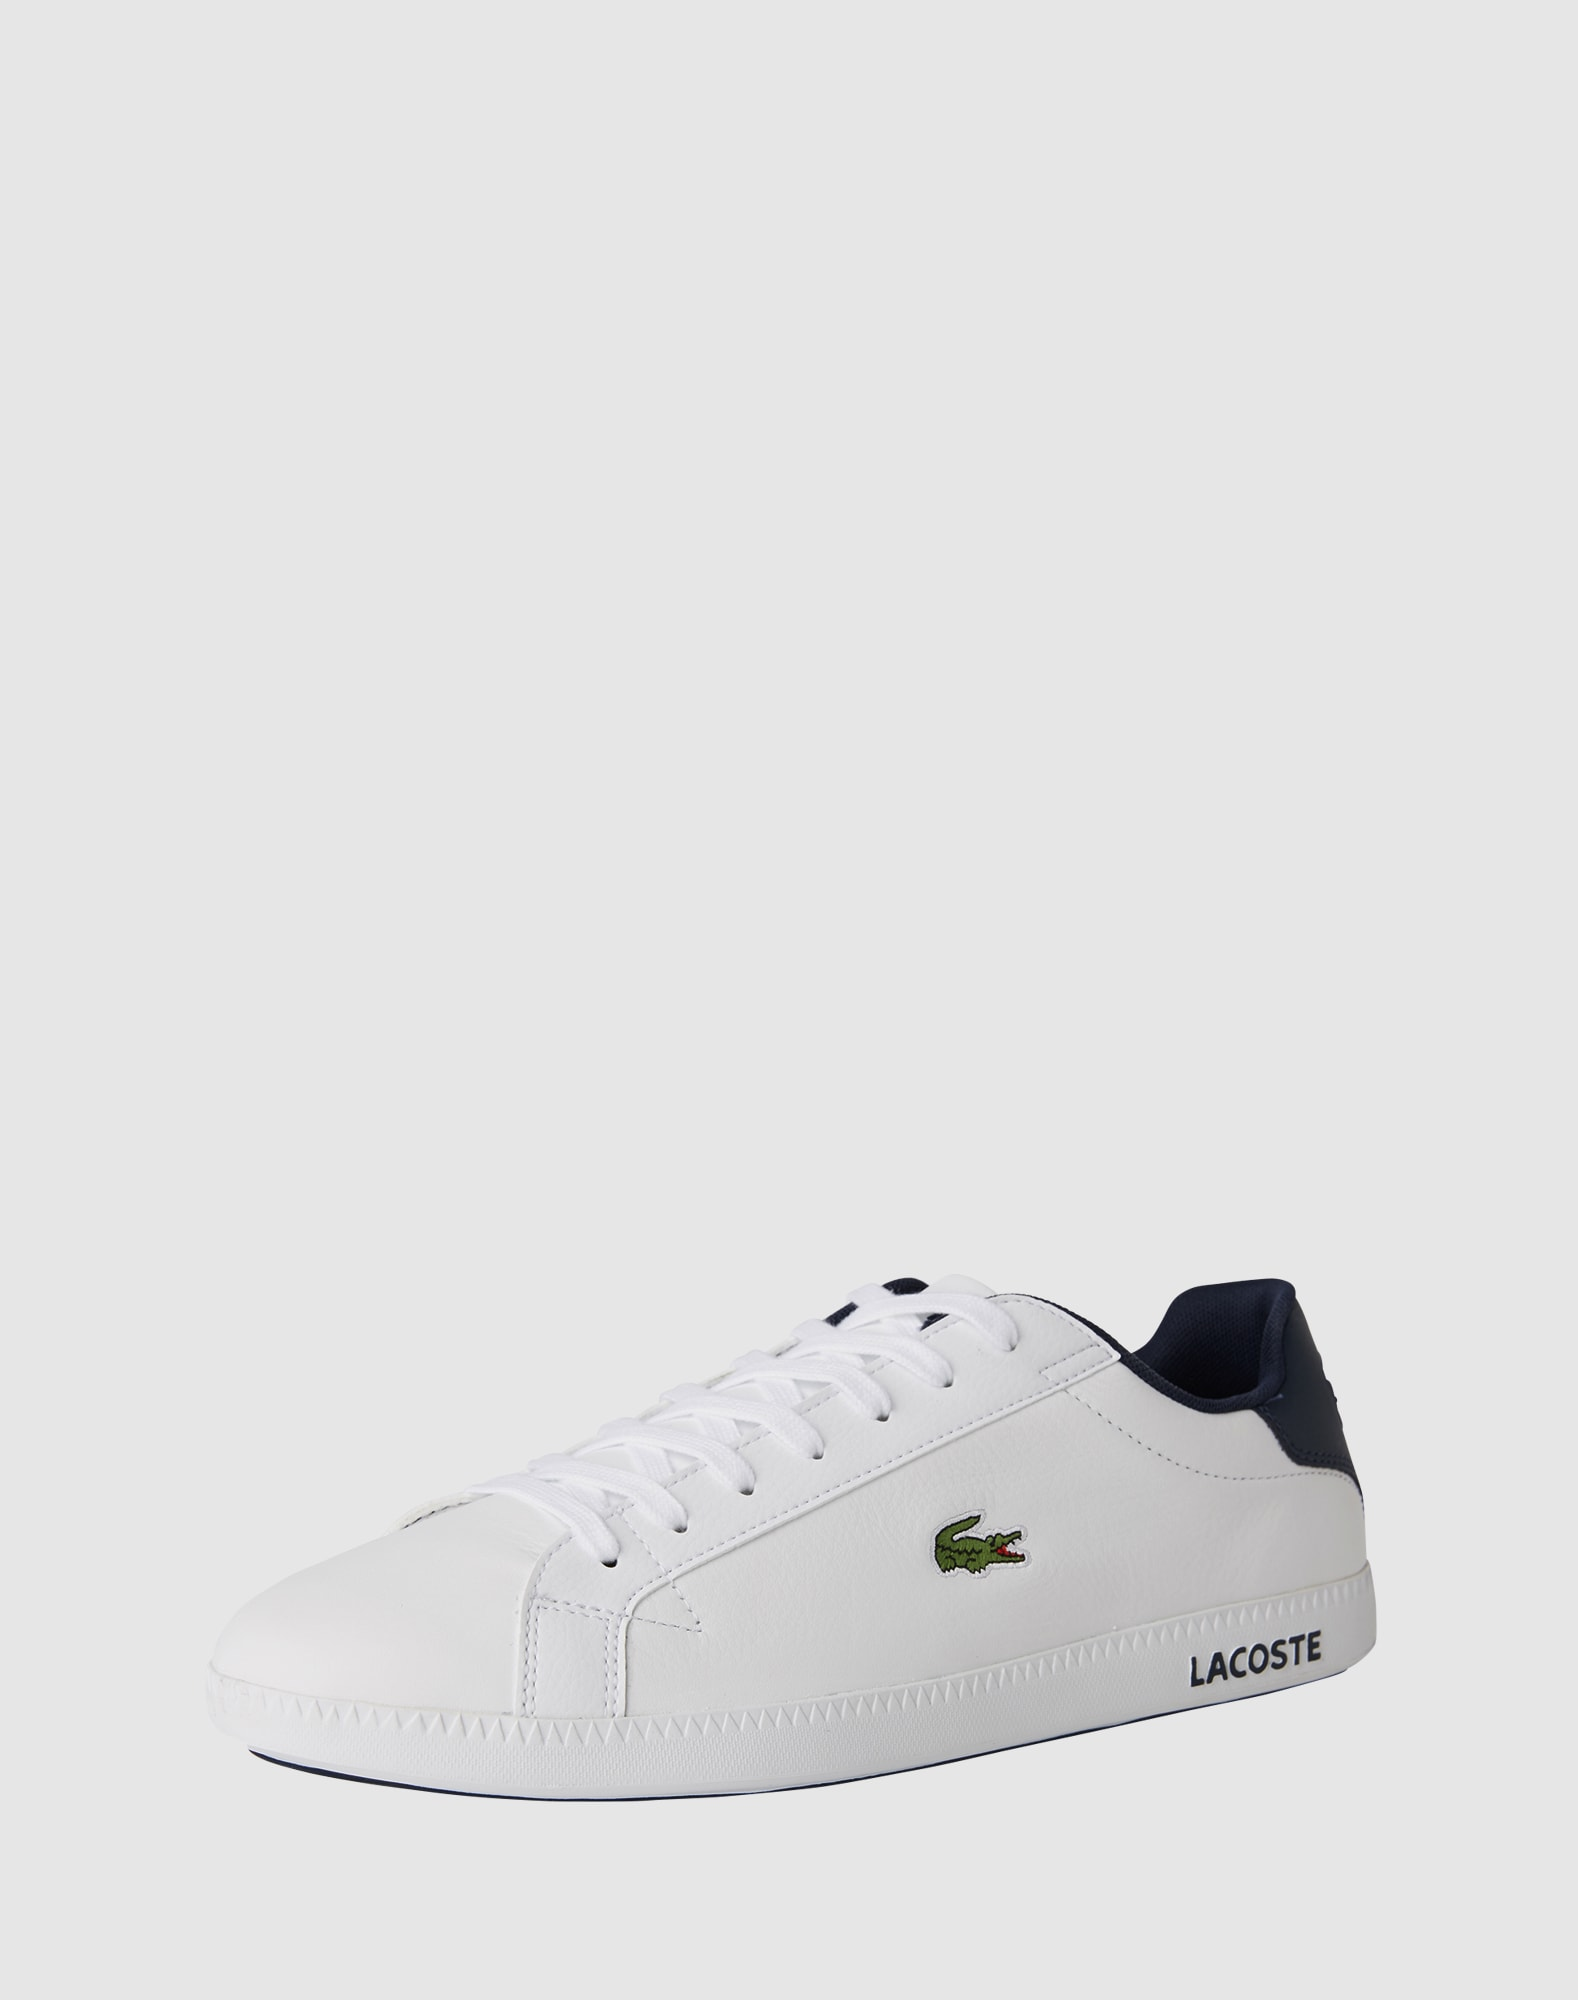 lacoste sneaker 39 graduate lcr3 spm 39 in wei about you. Black Bedroom Furniture Sets. Home Design Ideas